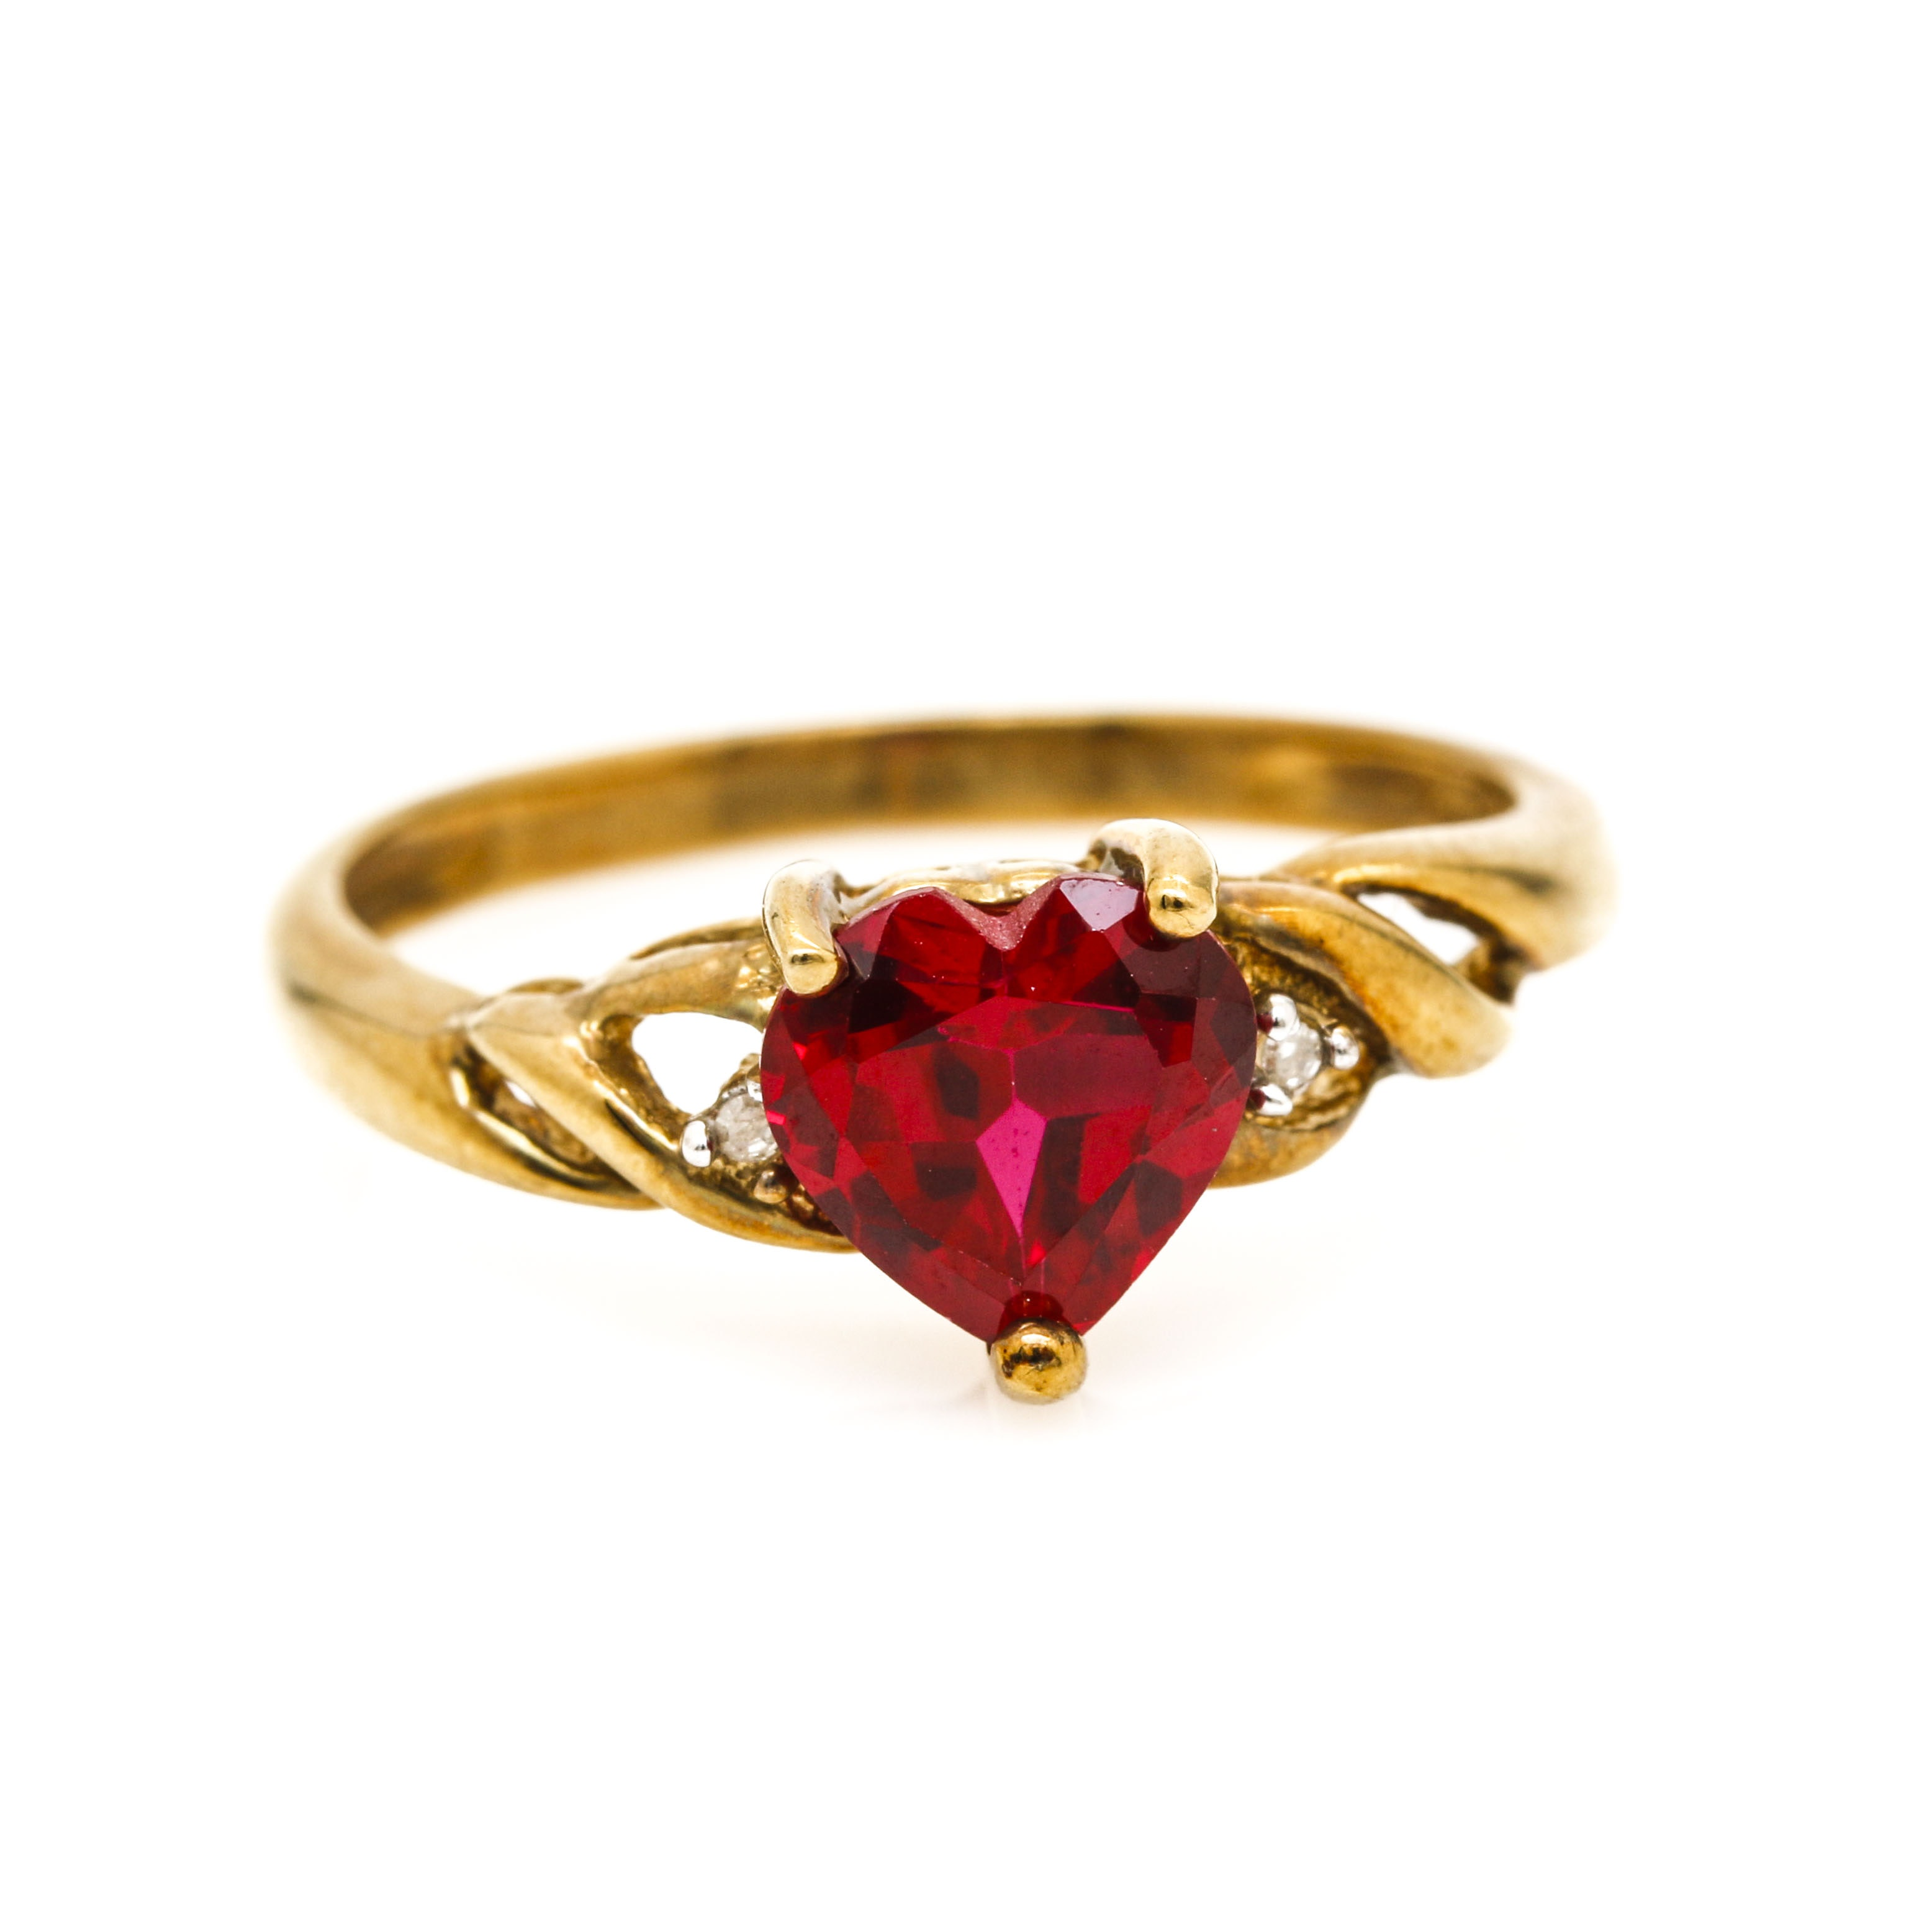 10K Yellow Gold Heart Shaped Ruby and Diamond Ring